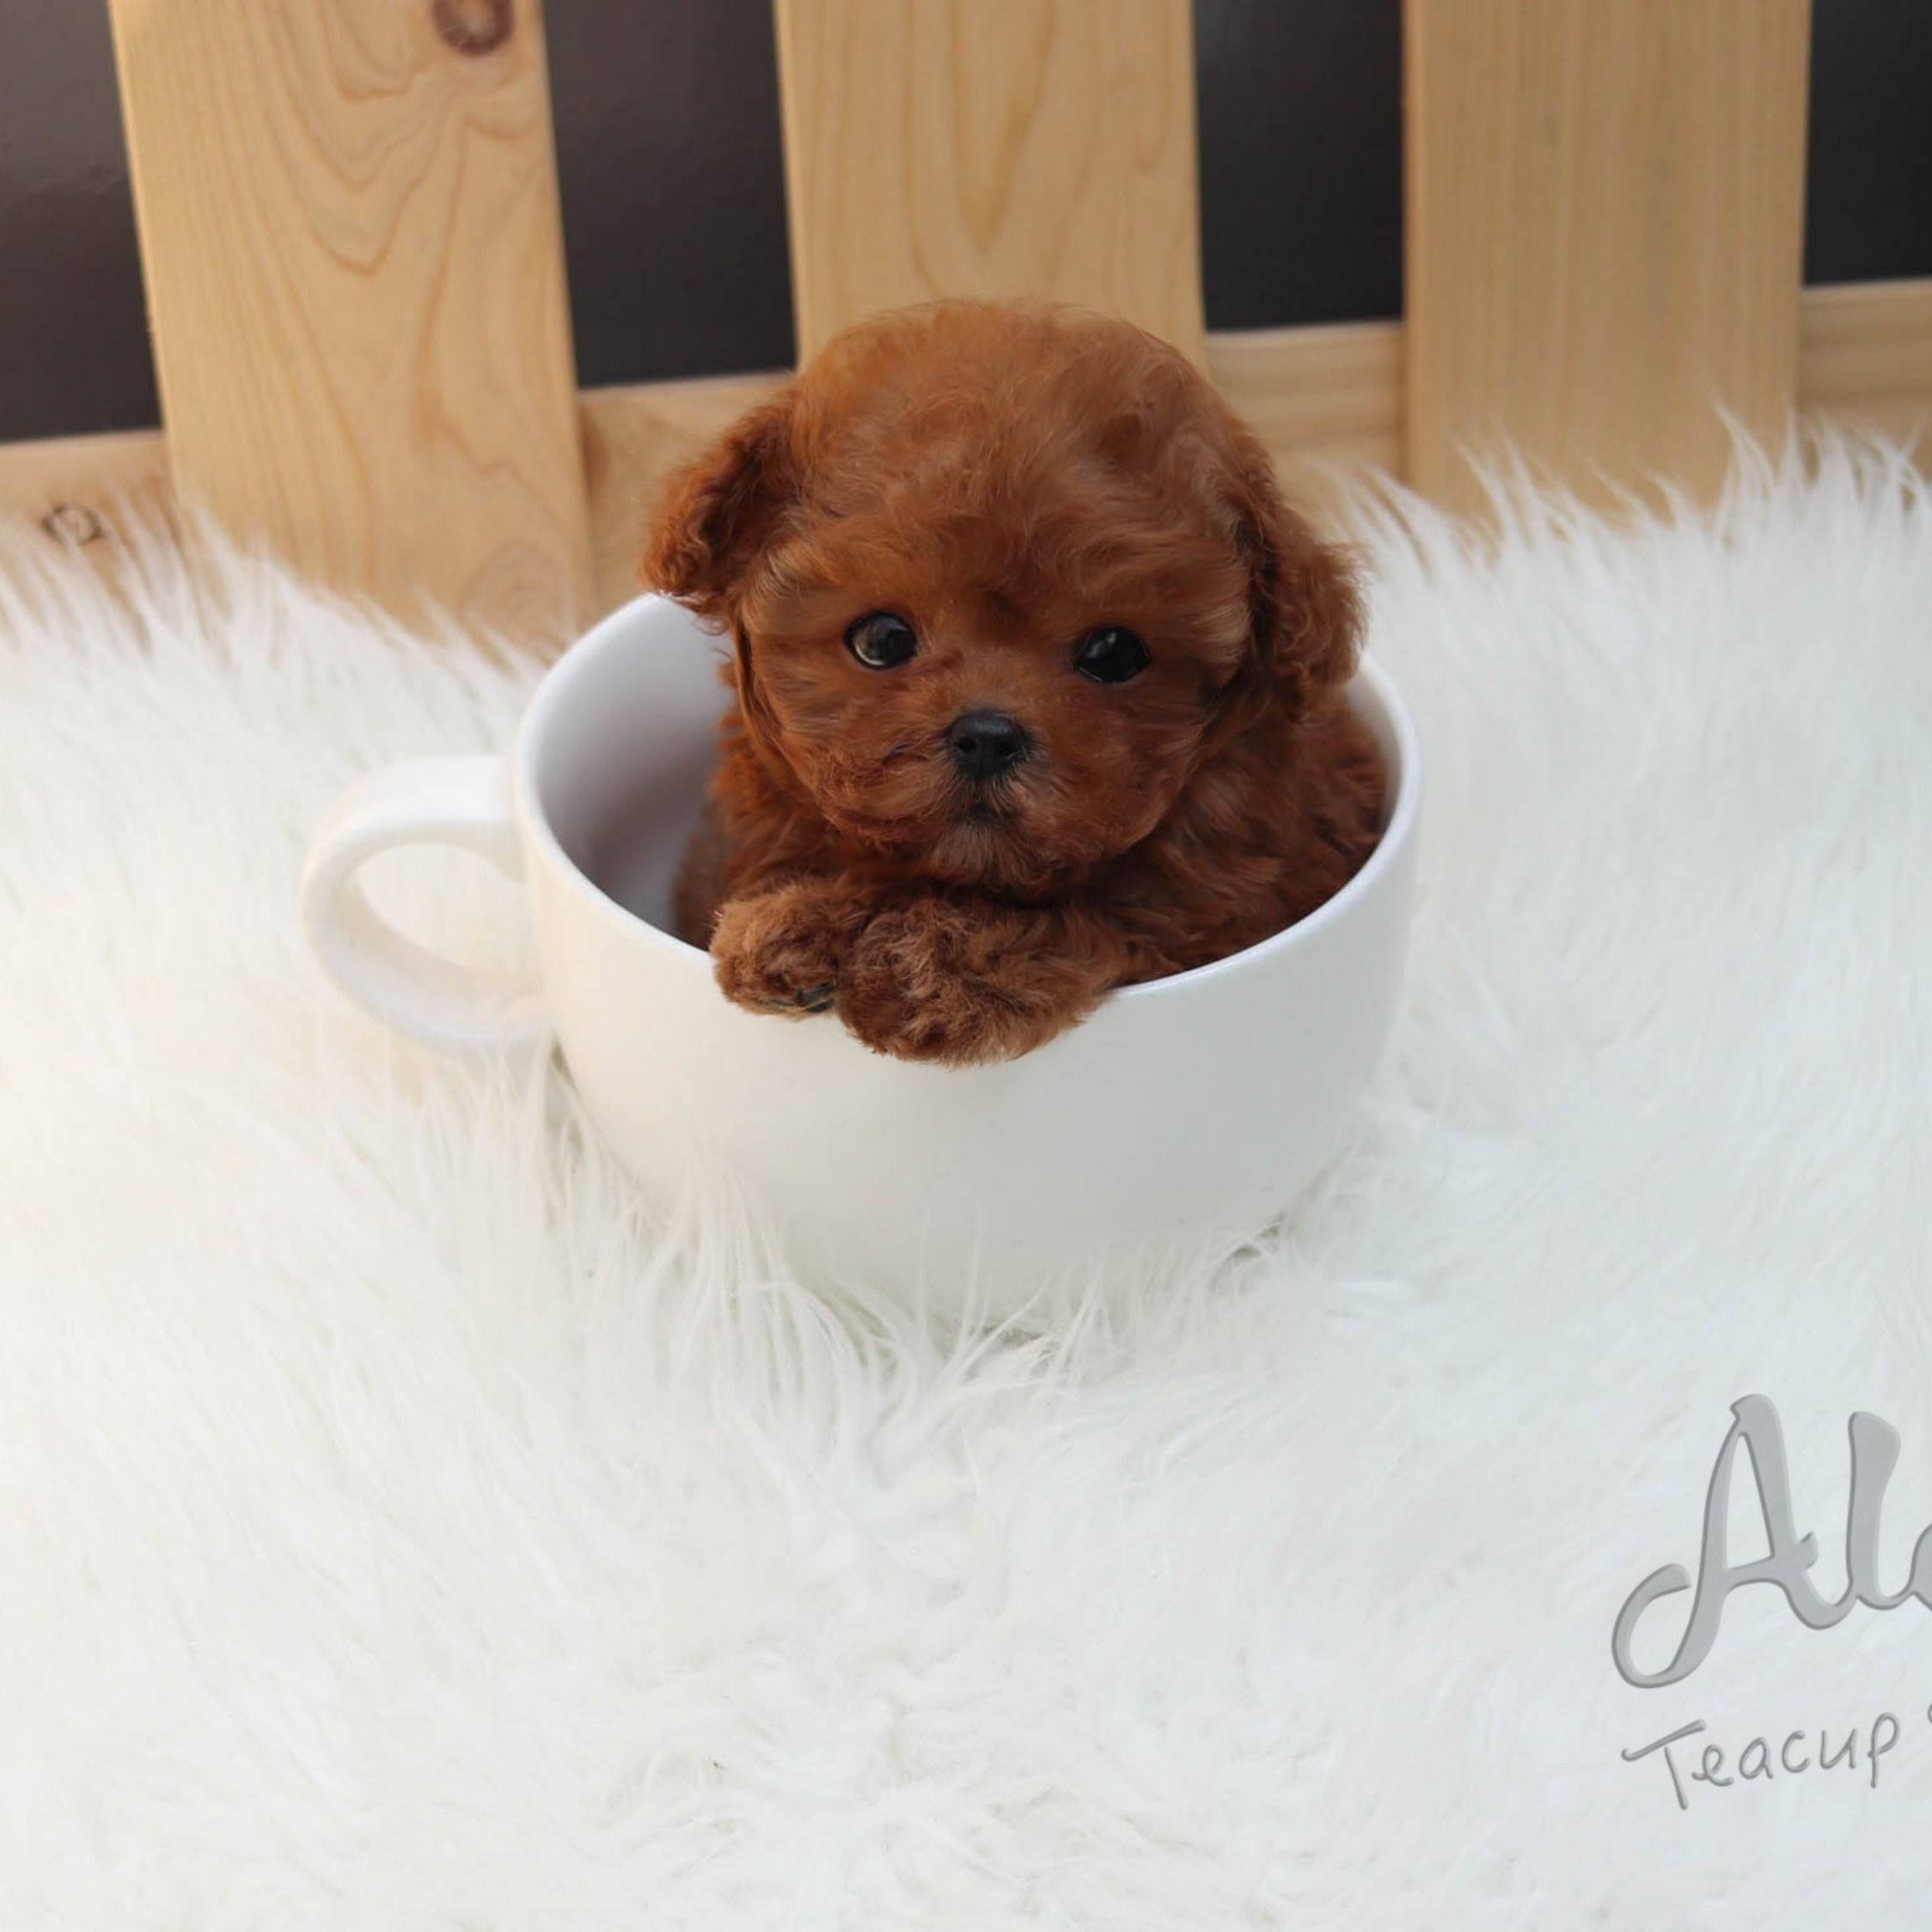 Cuteteacuppuppies In 2020 Teacup Puppies Teacup Puppies For Sale Teacup Poodle Puppies